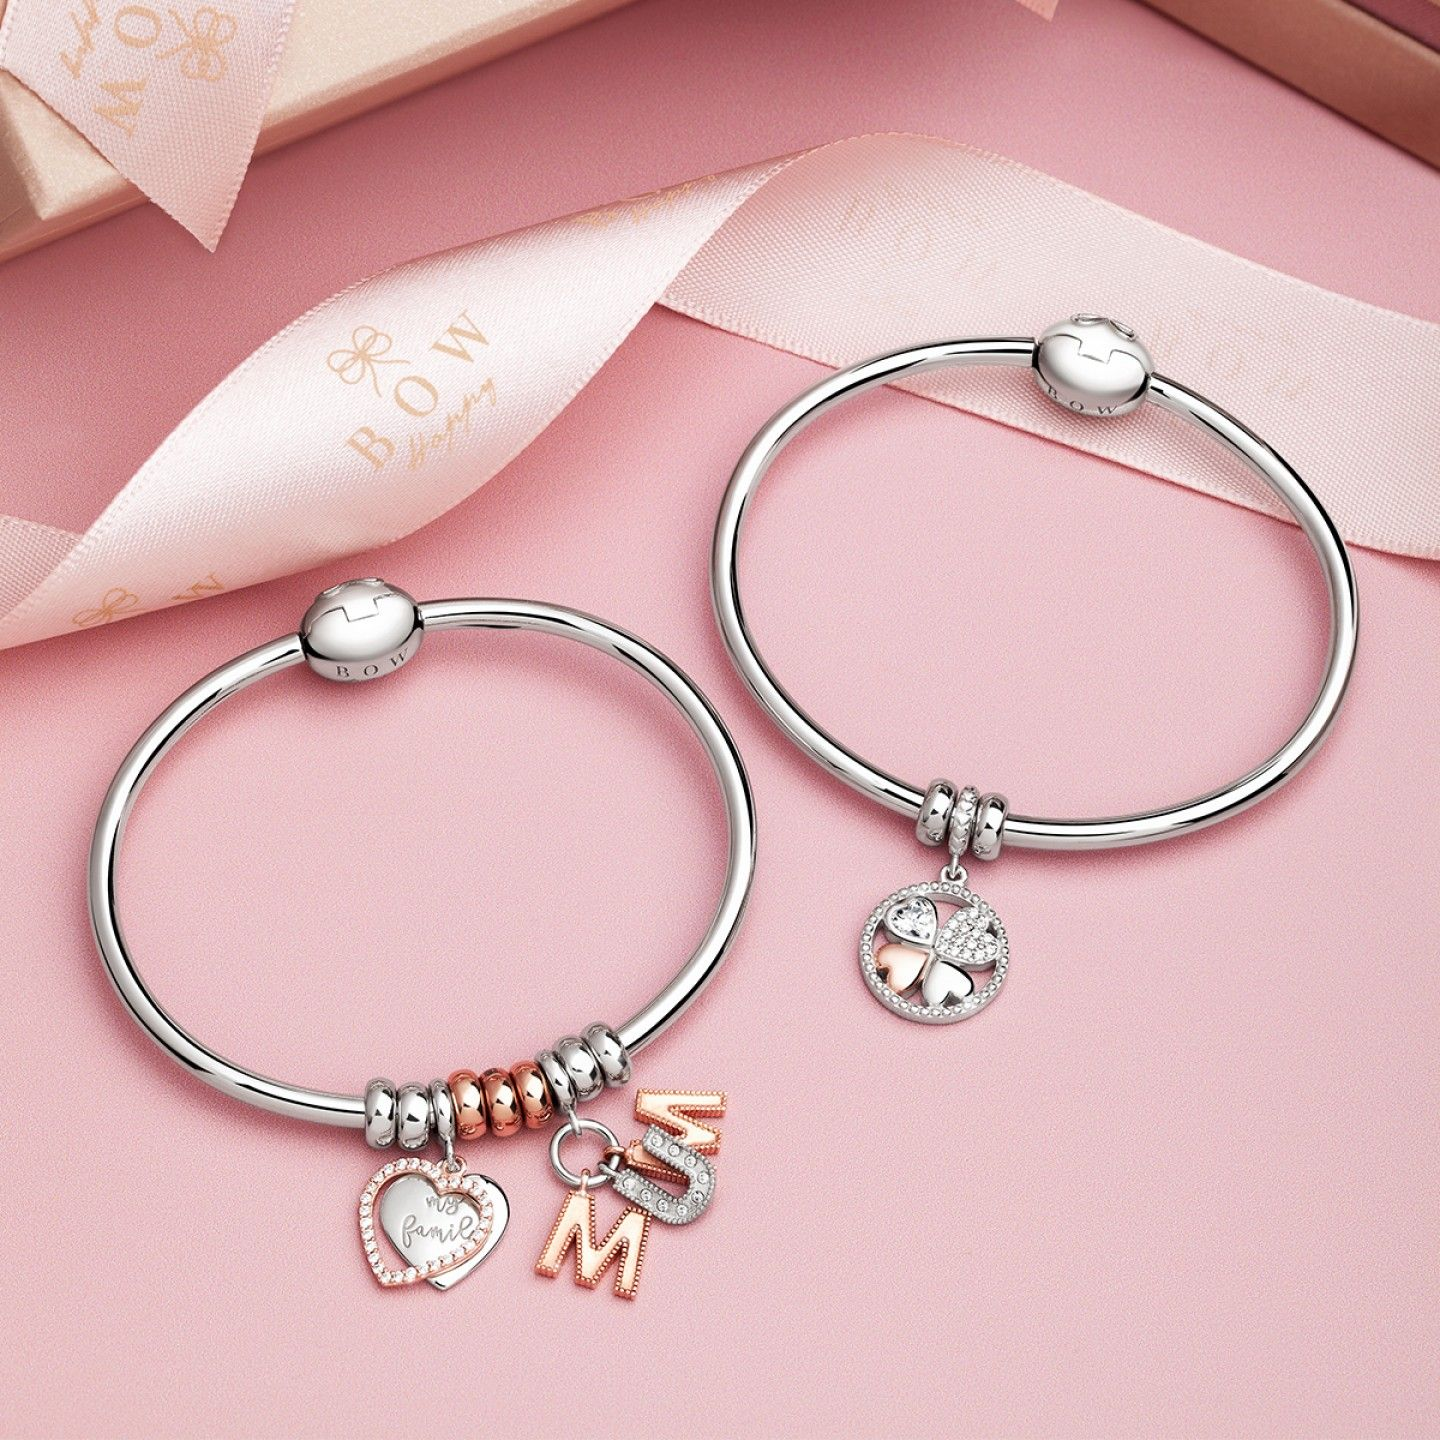 Charm BOW HAPPY Love Stories Mum